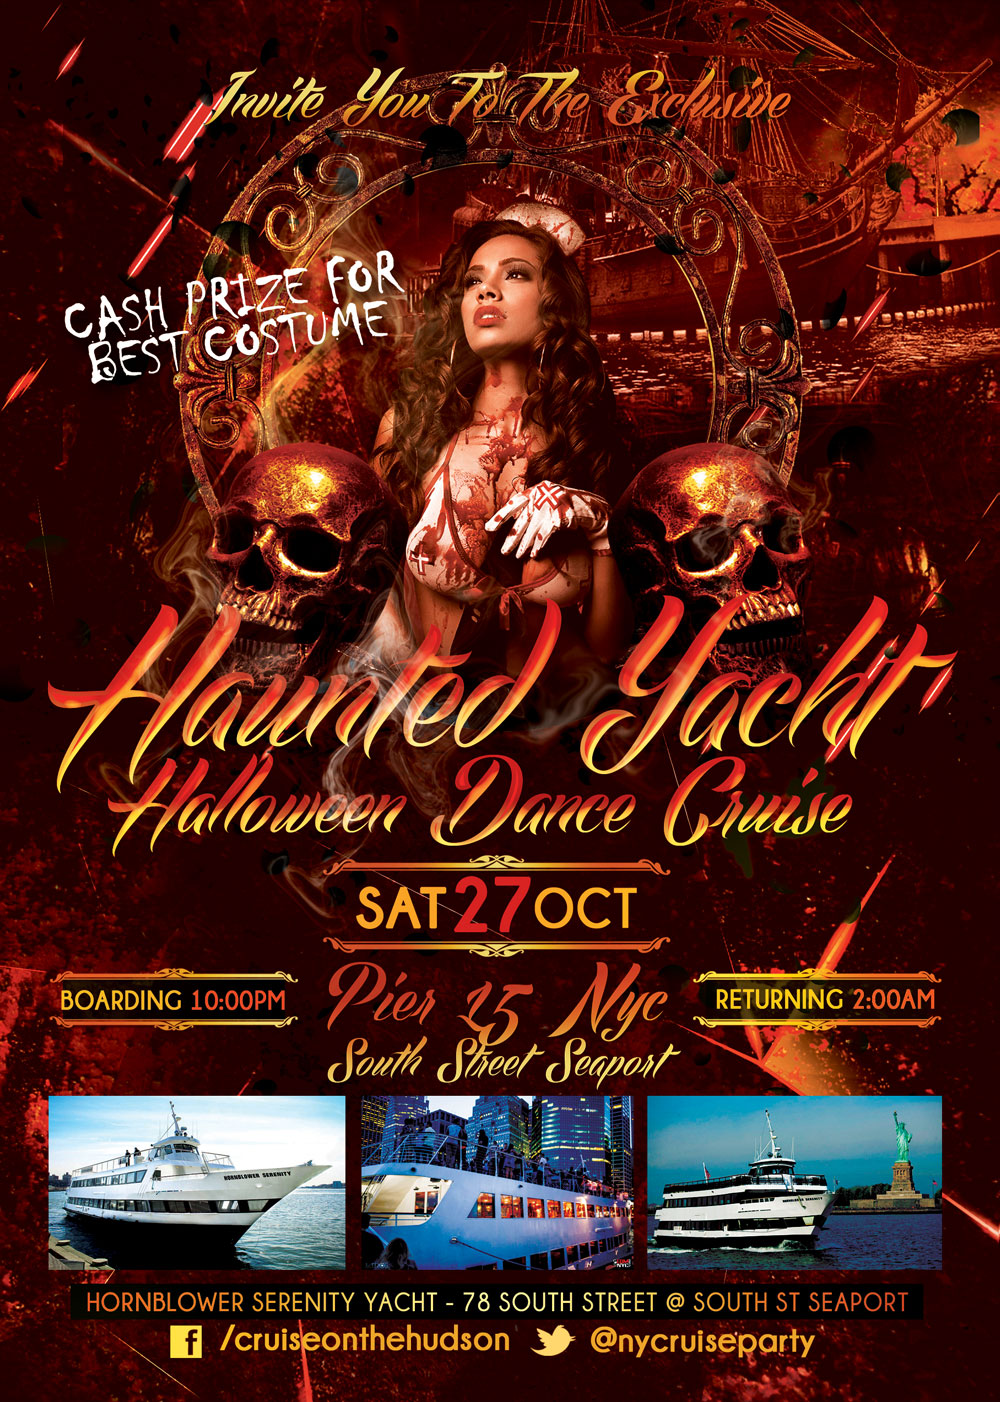 Haunted Yacht Halloween Cruise NYC Halloween aboard Hornblower Serenity Yacht Pier 15 NYC South Street Seaport New York Halloween Party